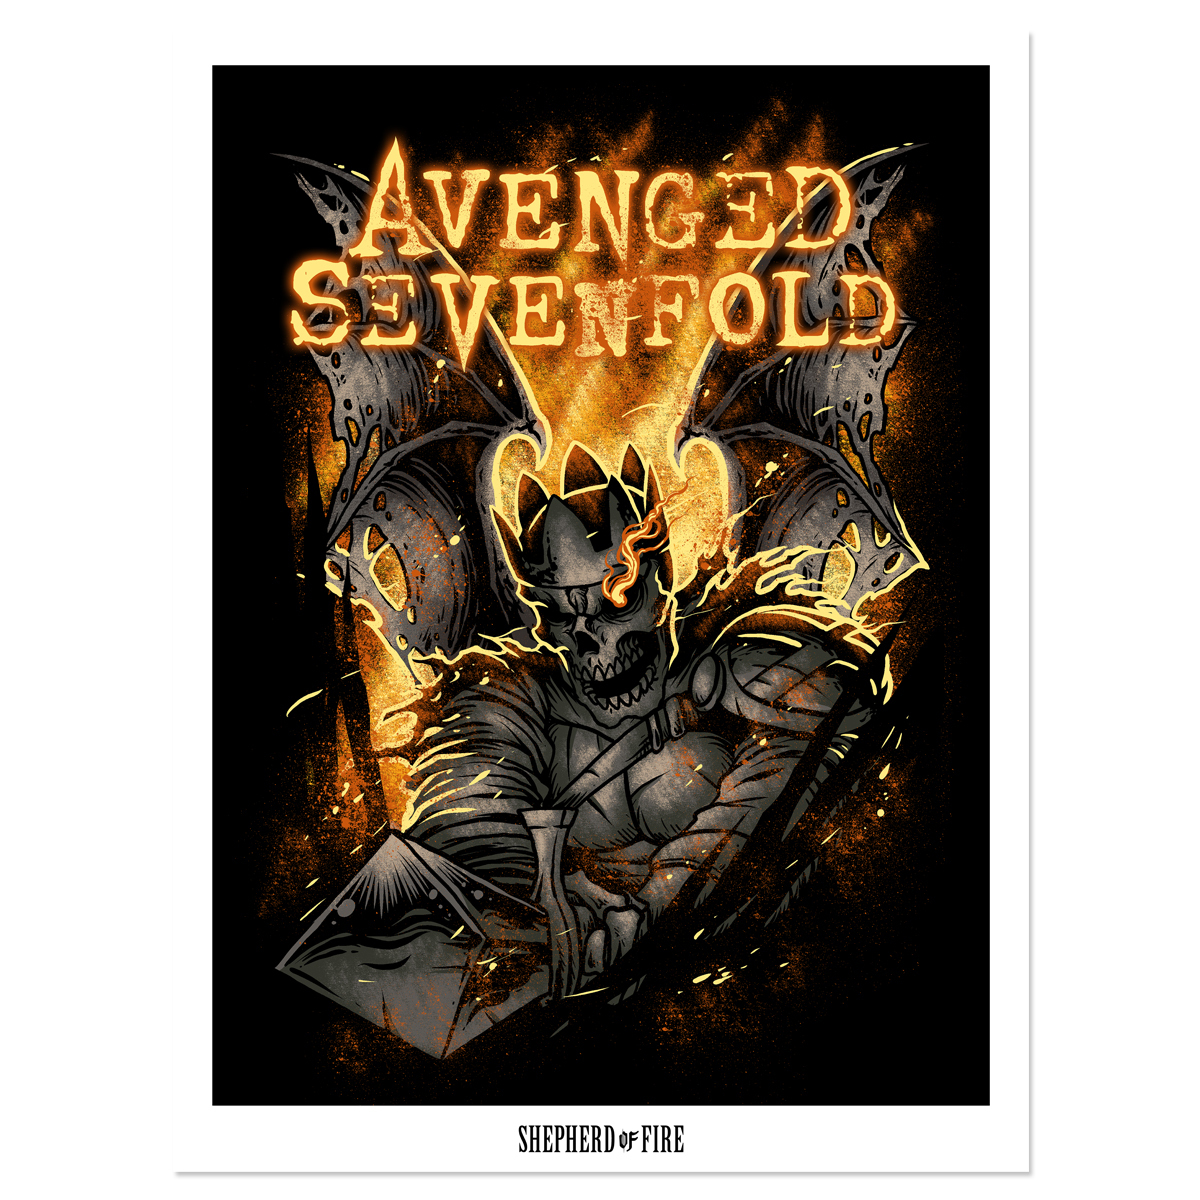 Avenged Sevenfold Shepherd of Fire Poster